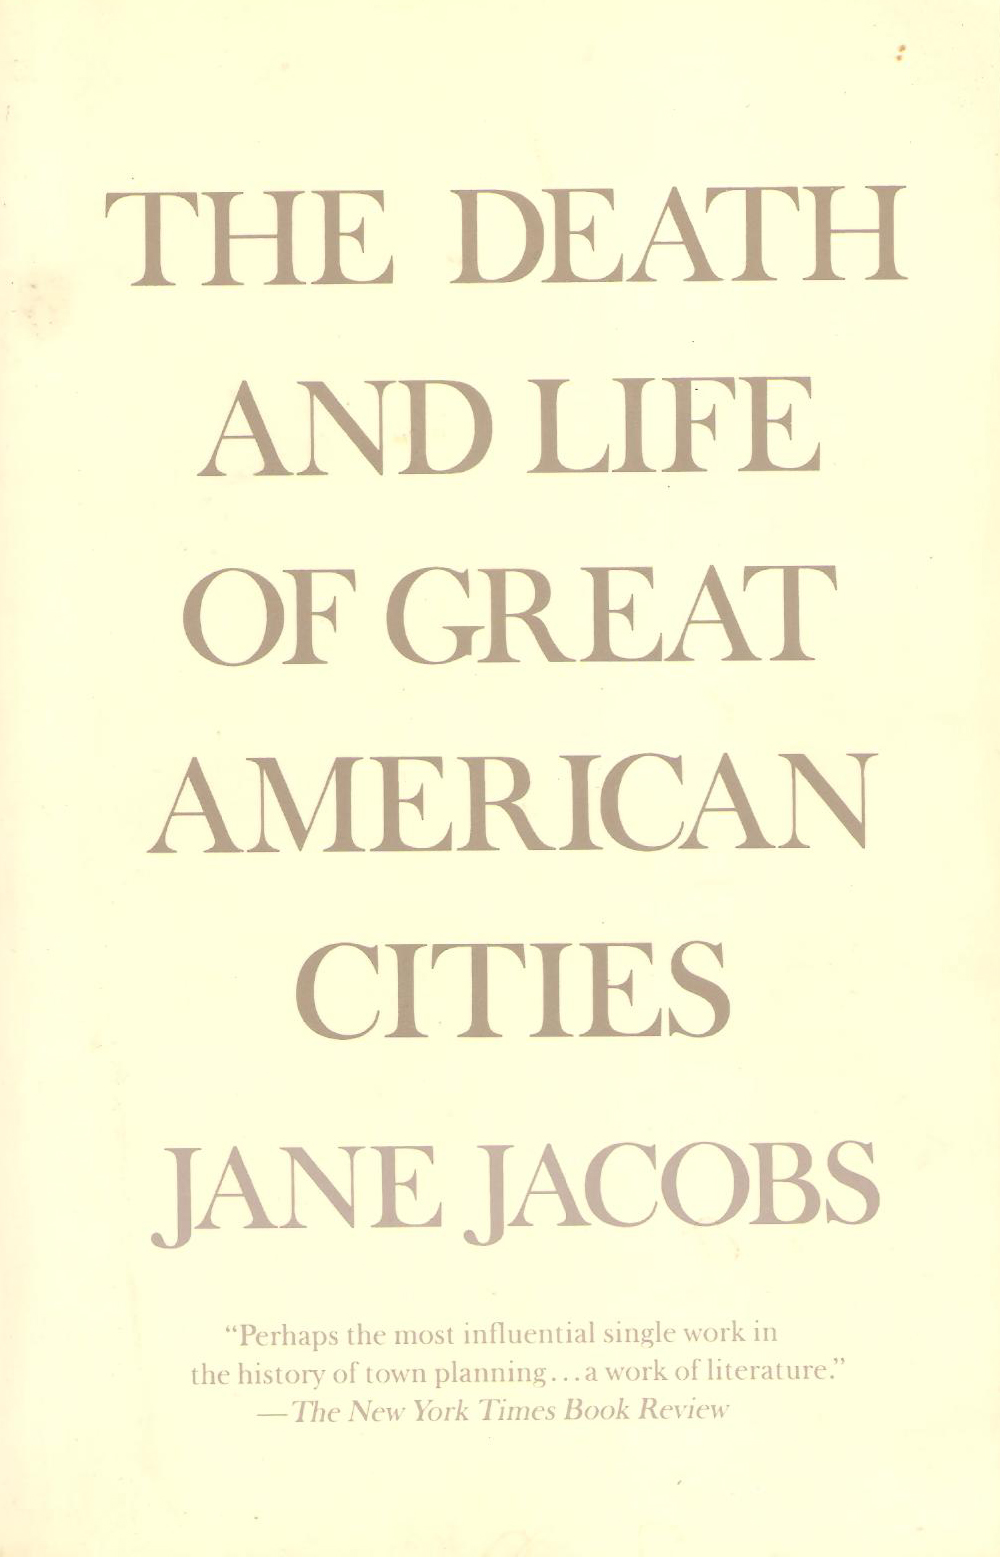 the-death-and-life-of-great-american-cities.jpg